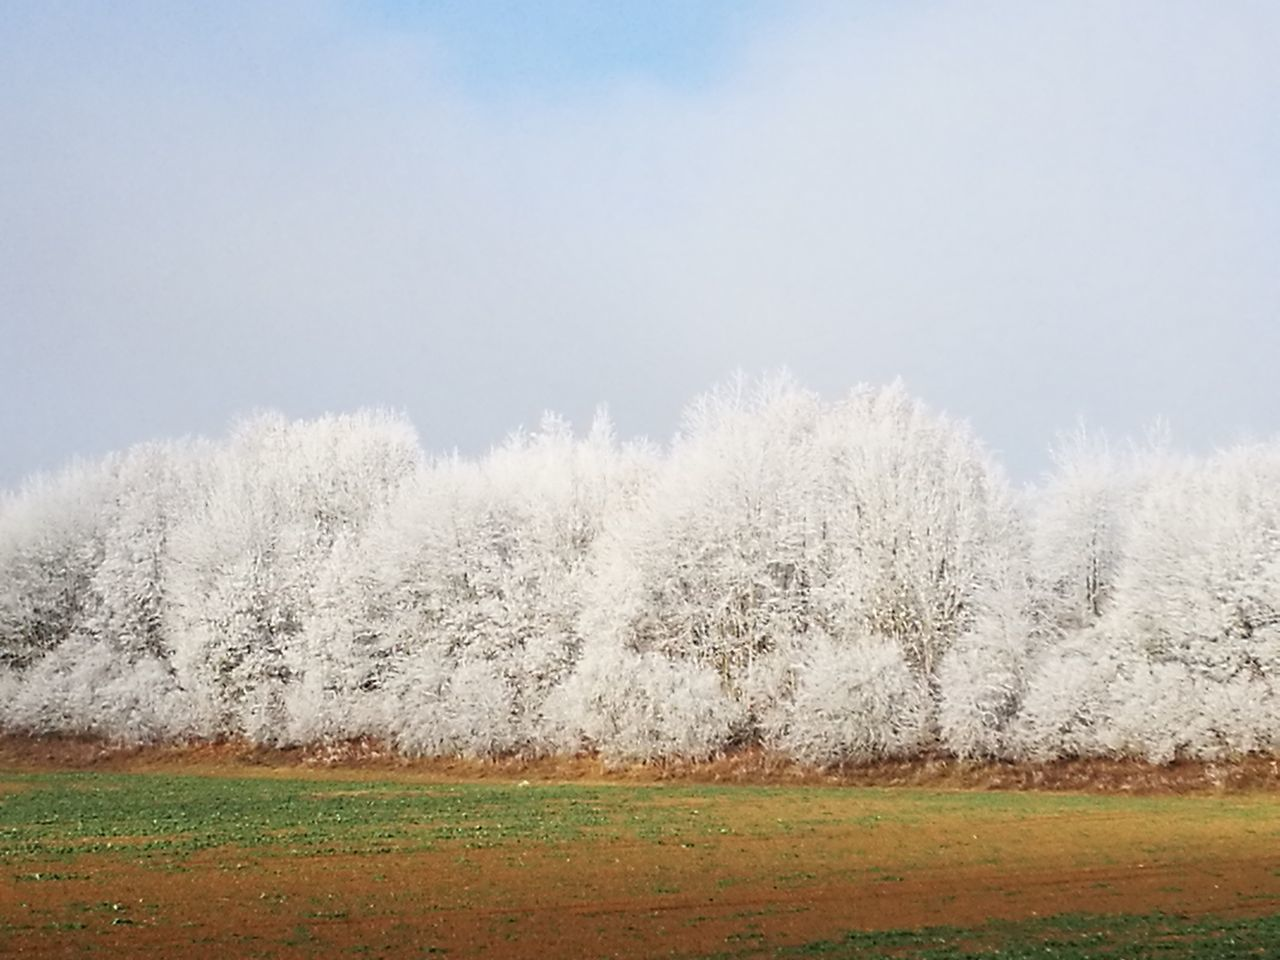 nature, beauty in nature, no people, day, outdoors, grass, field, scenics, tranquility, landscape, growth, clear sky, tree, cold temperature, sky